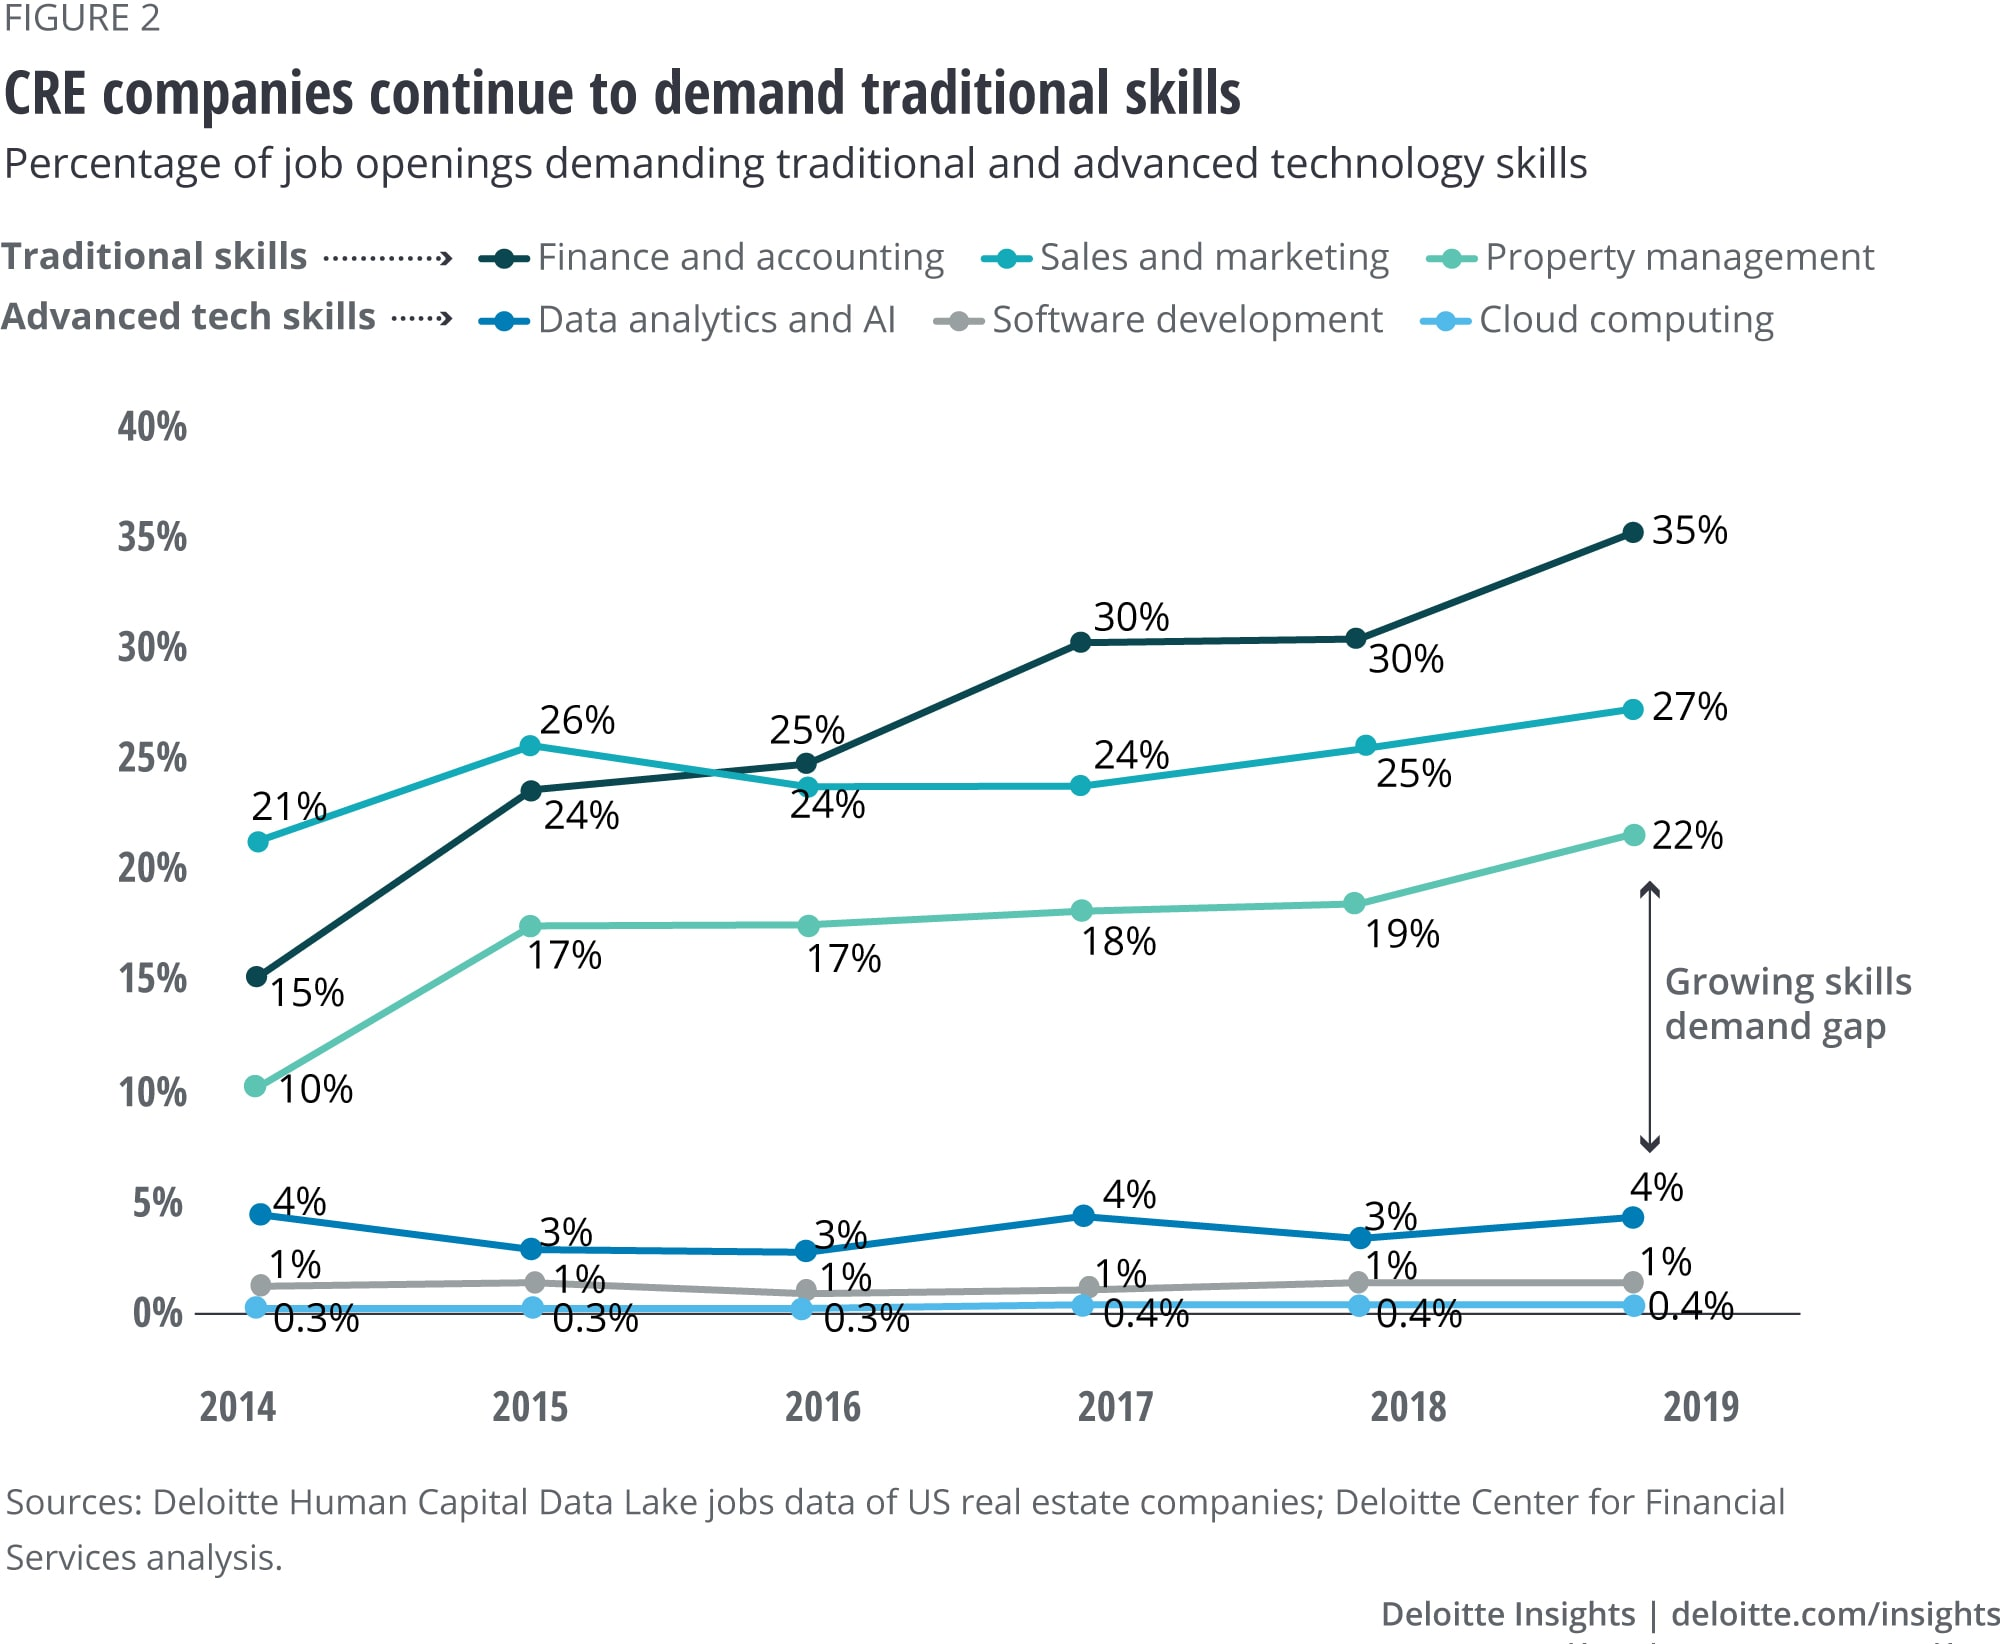 CRE companies continue to demand traditional skills